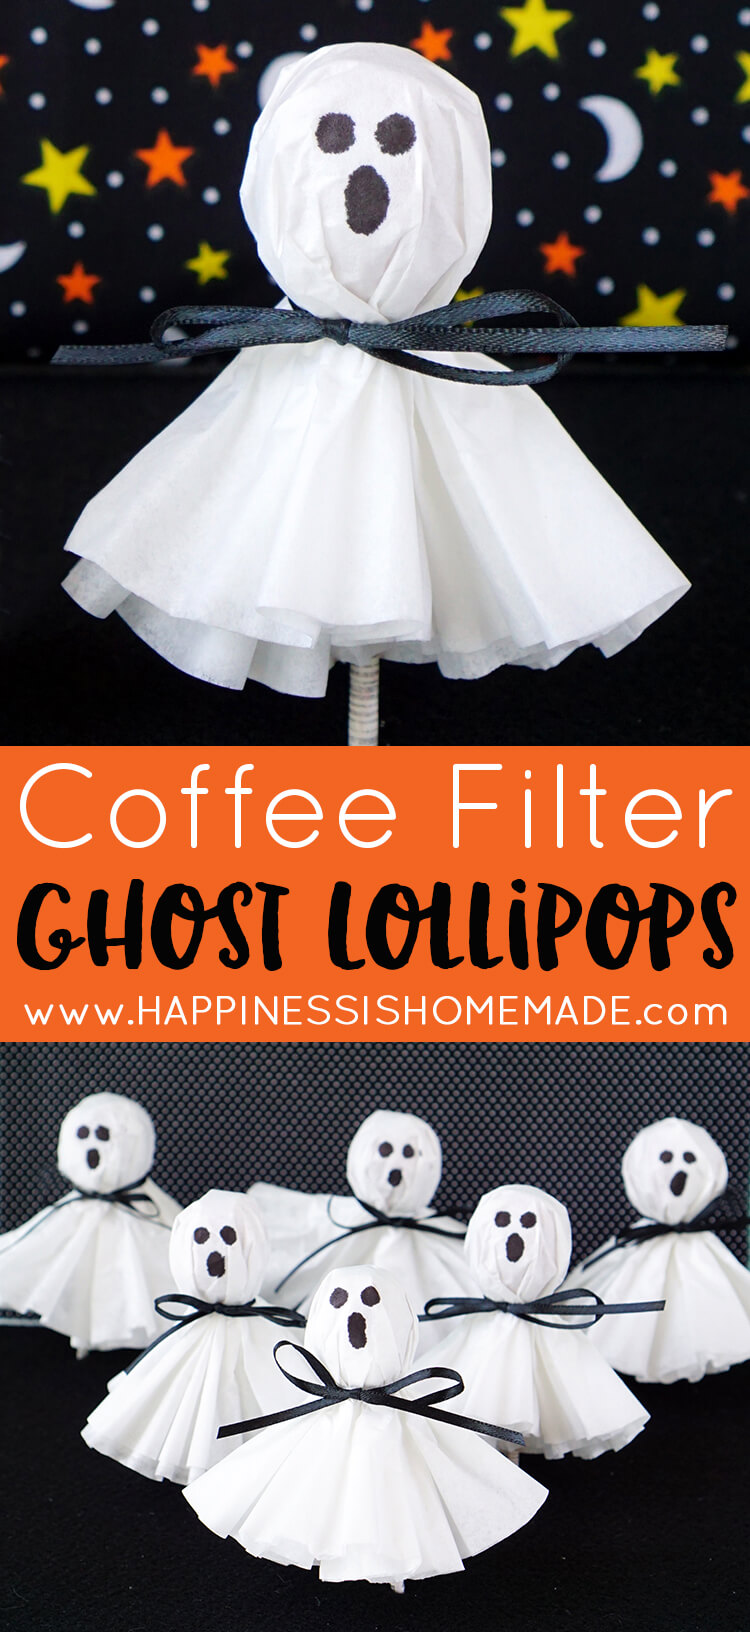 These coffee filter ghost lollipops are a cute and easy twist on classic kleenex tissue ghosts. A nostalgic and fun Halloween treat for all ages!